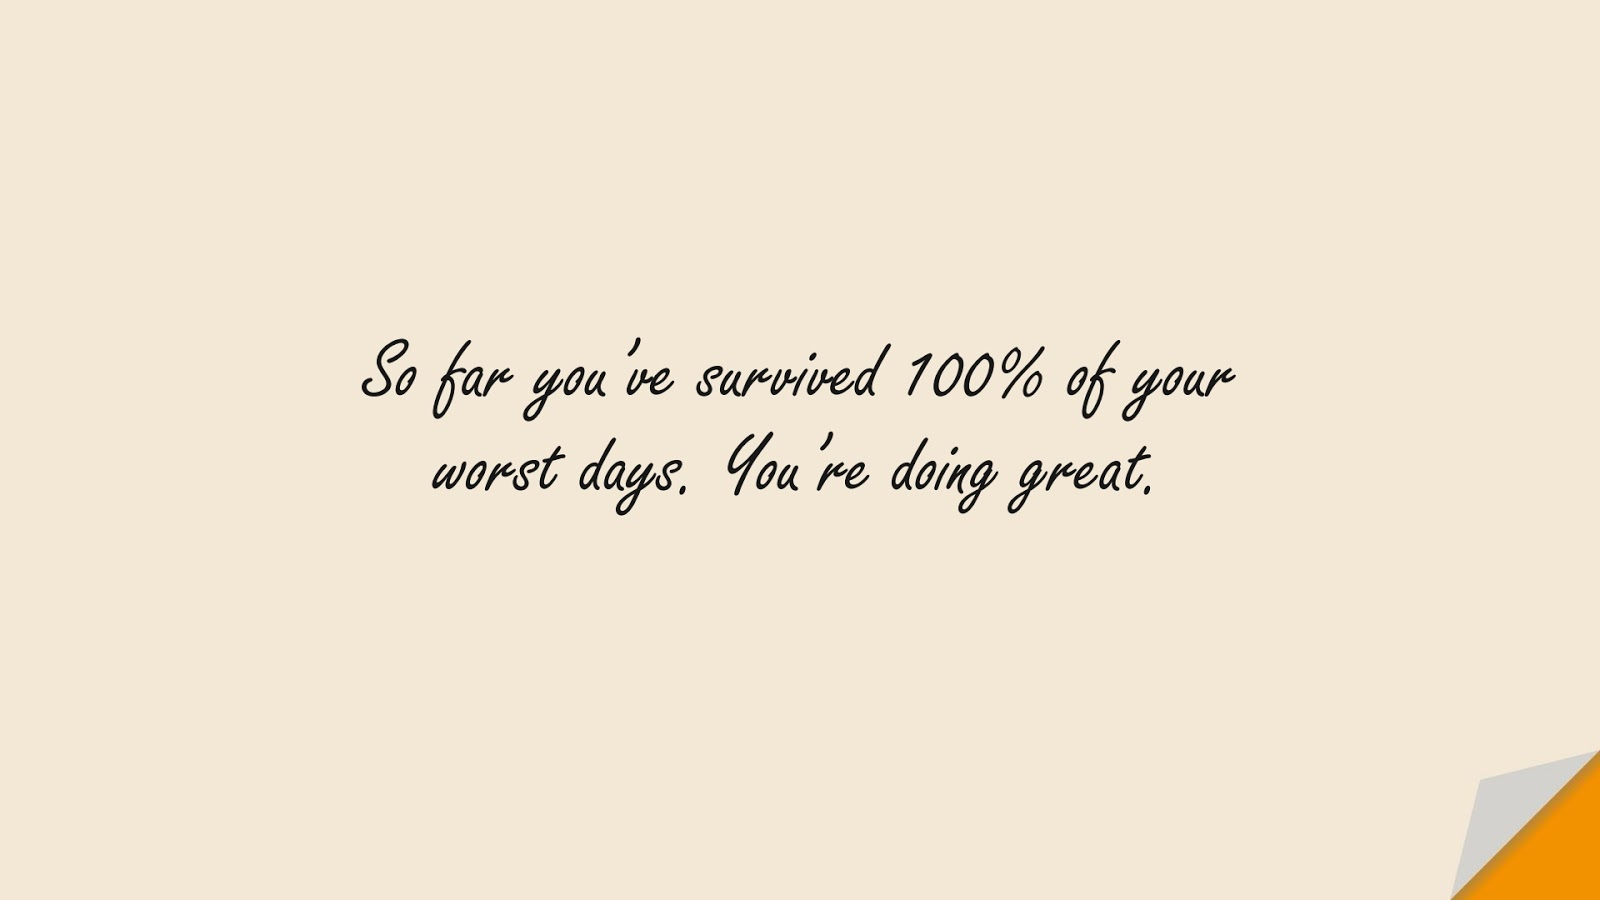 So far you've survived 100% of your worst days. You're doing great.FALSE